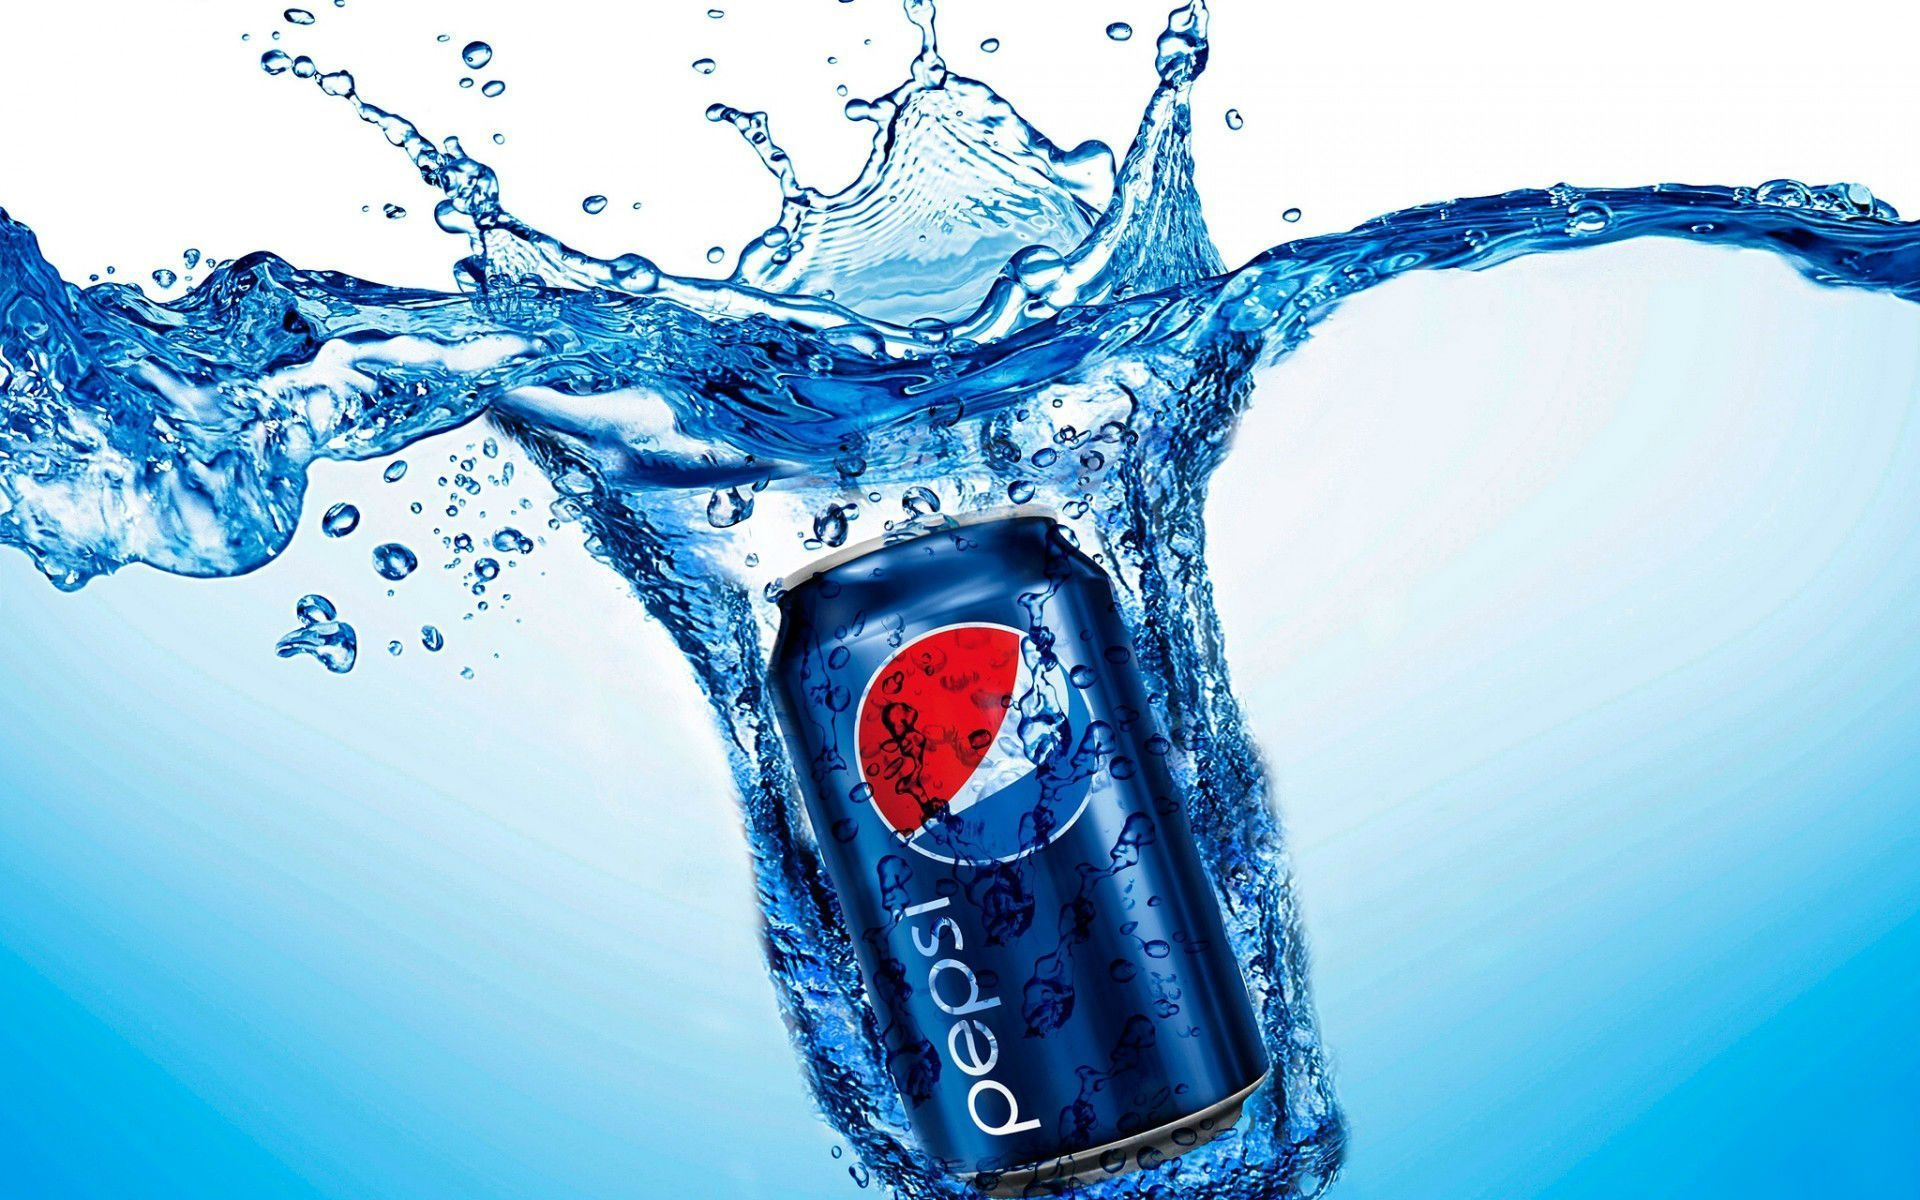 Pepsi Can Design HD desktop wallpaper : High Definition